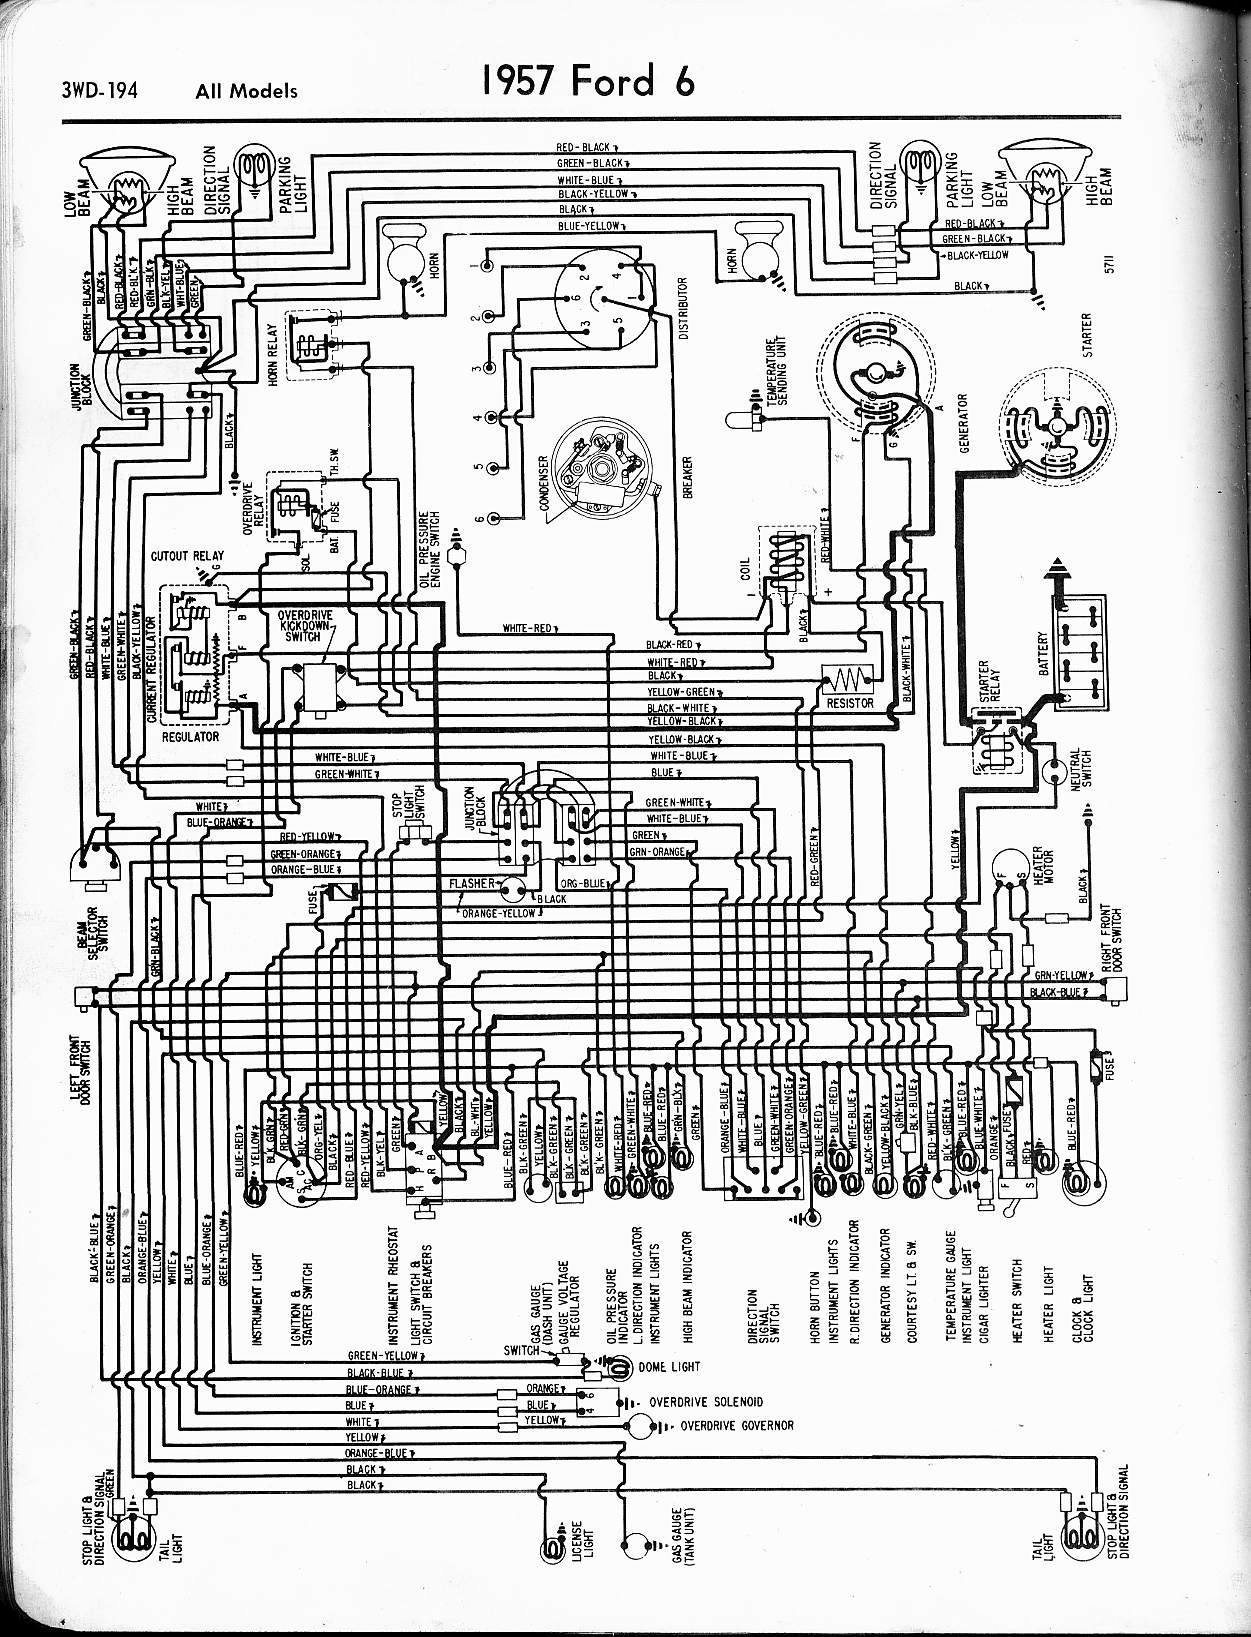 Ford Diagrams 1986 F 250 Instrument Cluster Wiring Diagram 57 Drawing A